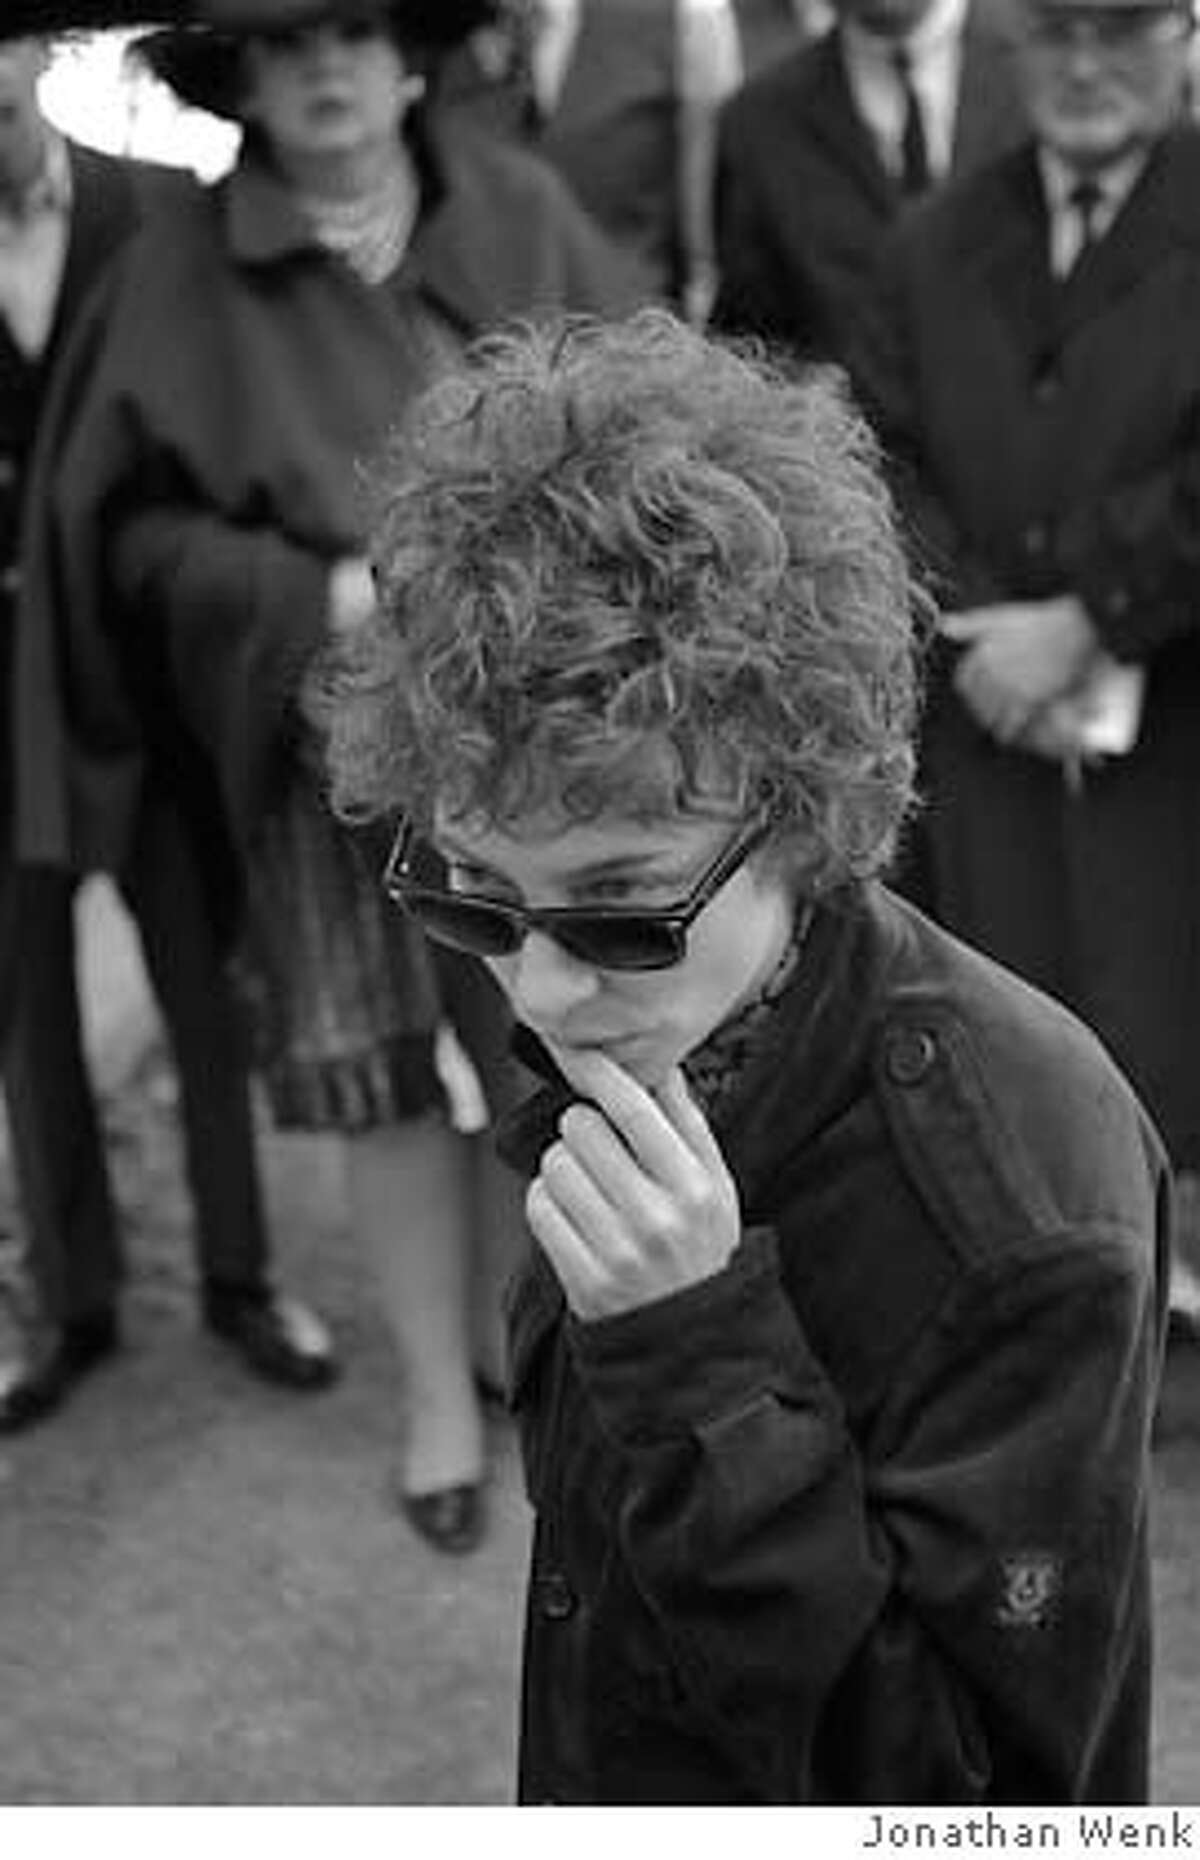 Cate Blanchett as Jude in Todd Haynes' I'm Not There. Ran on: 11-21-2007 Cate Blanchett as the mid-60s Bob Dylan.